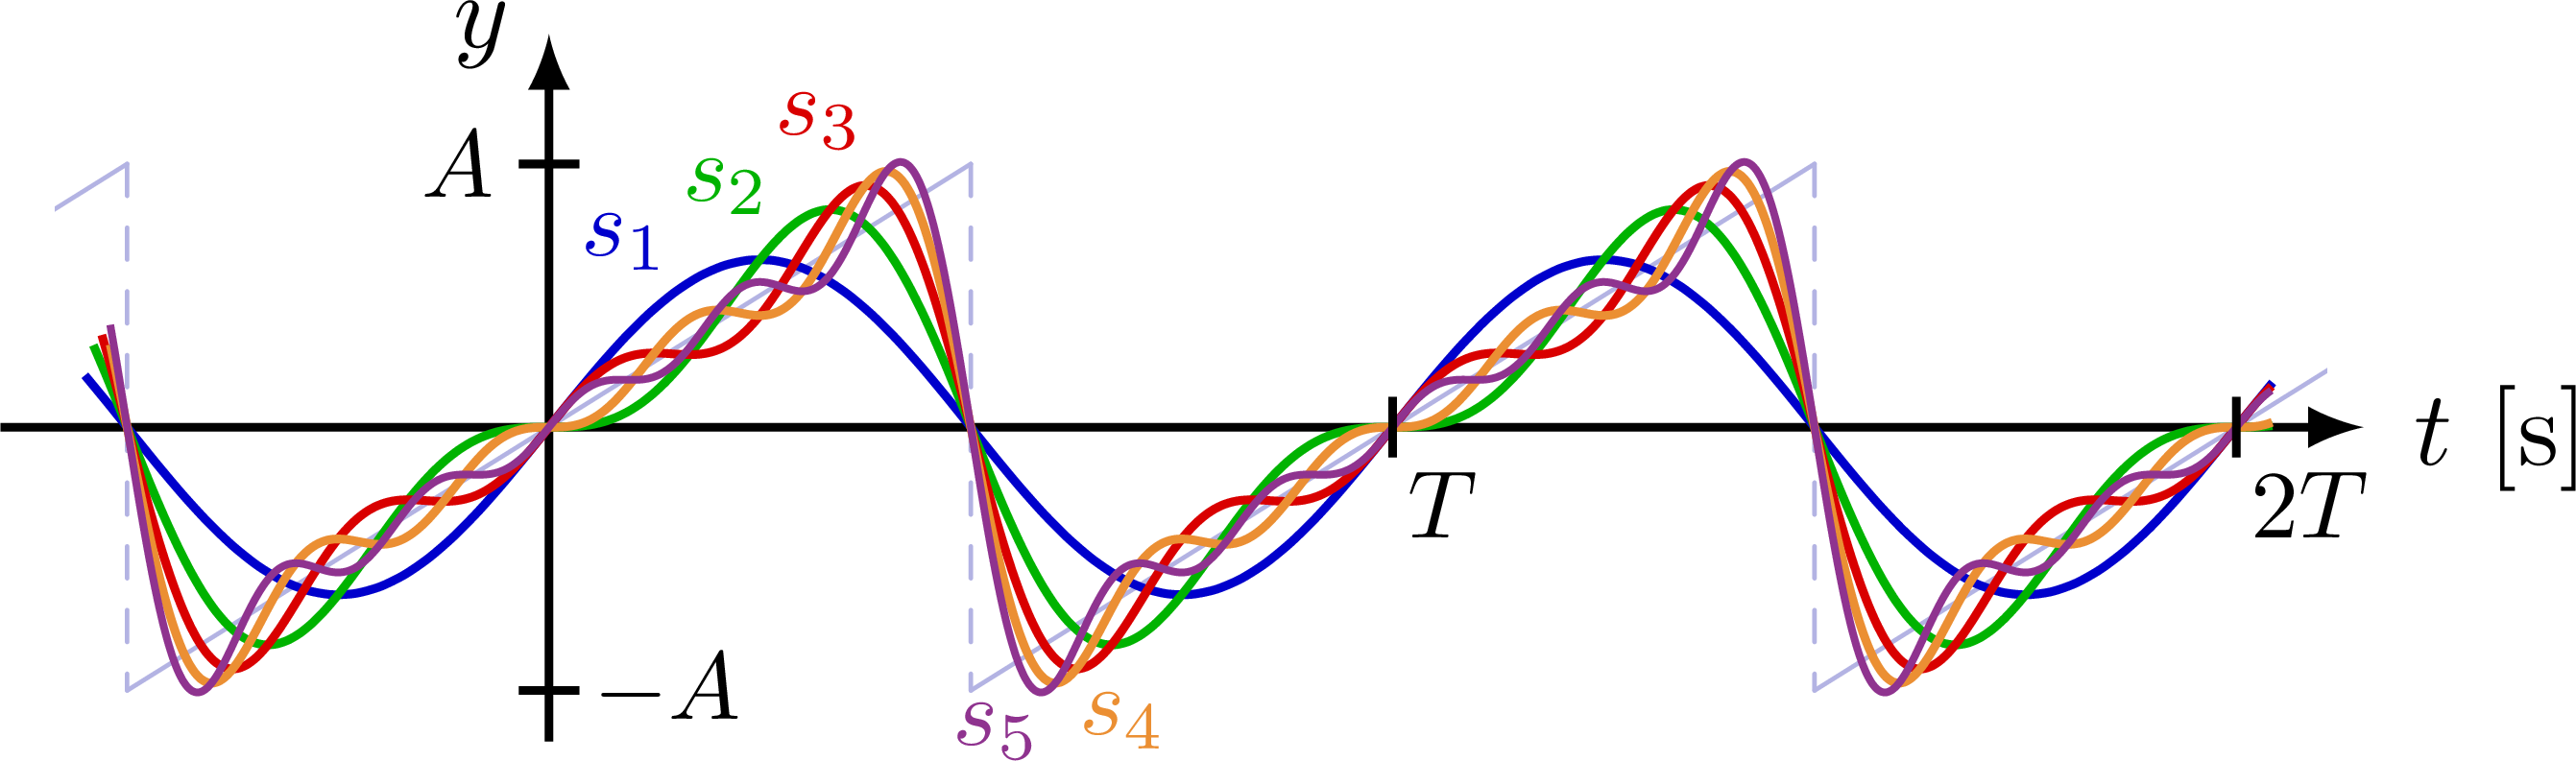 fourier_series-006.png